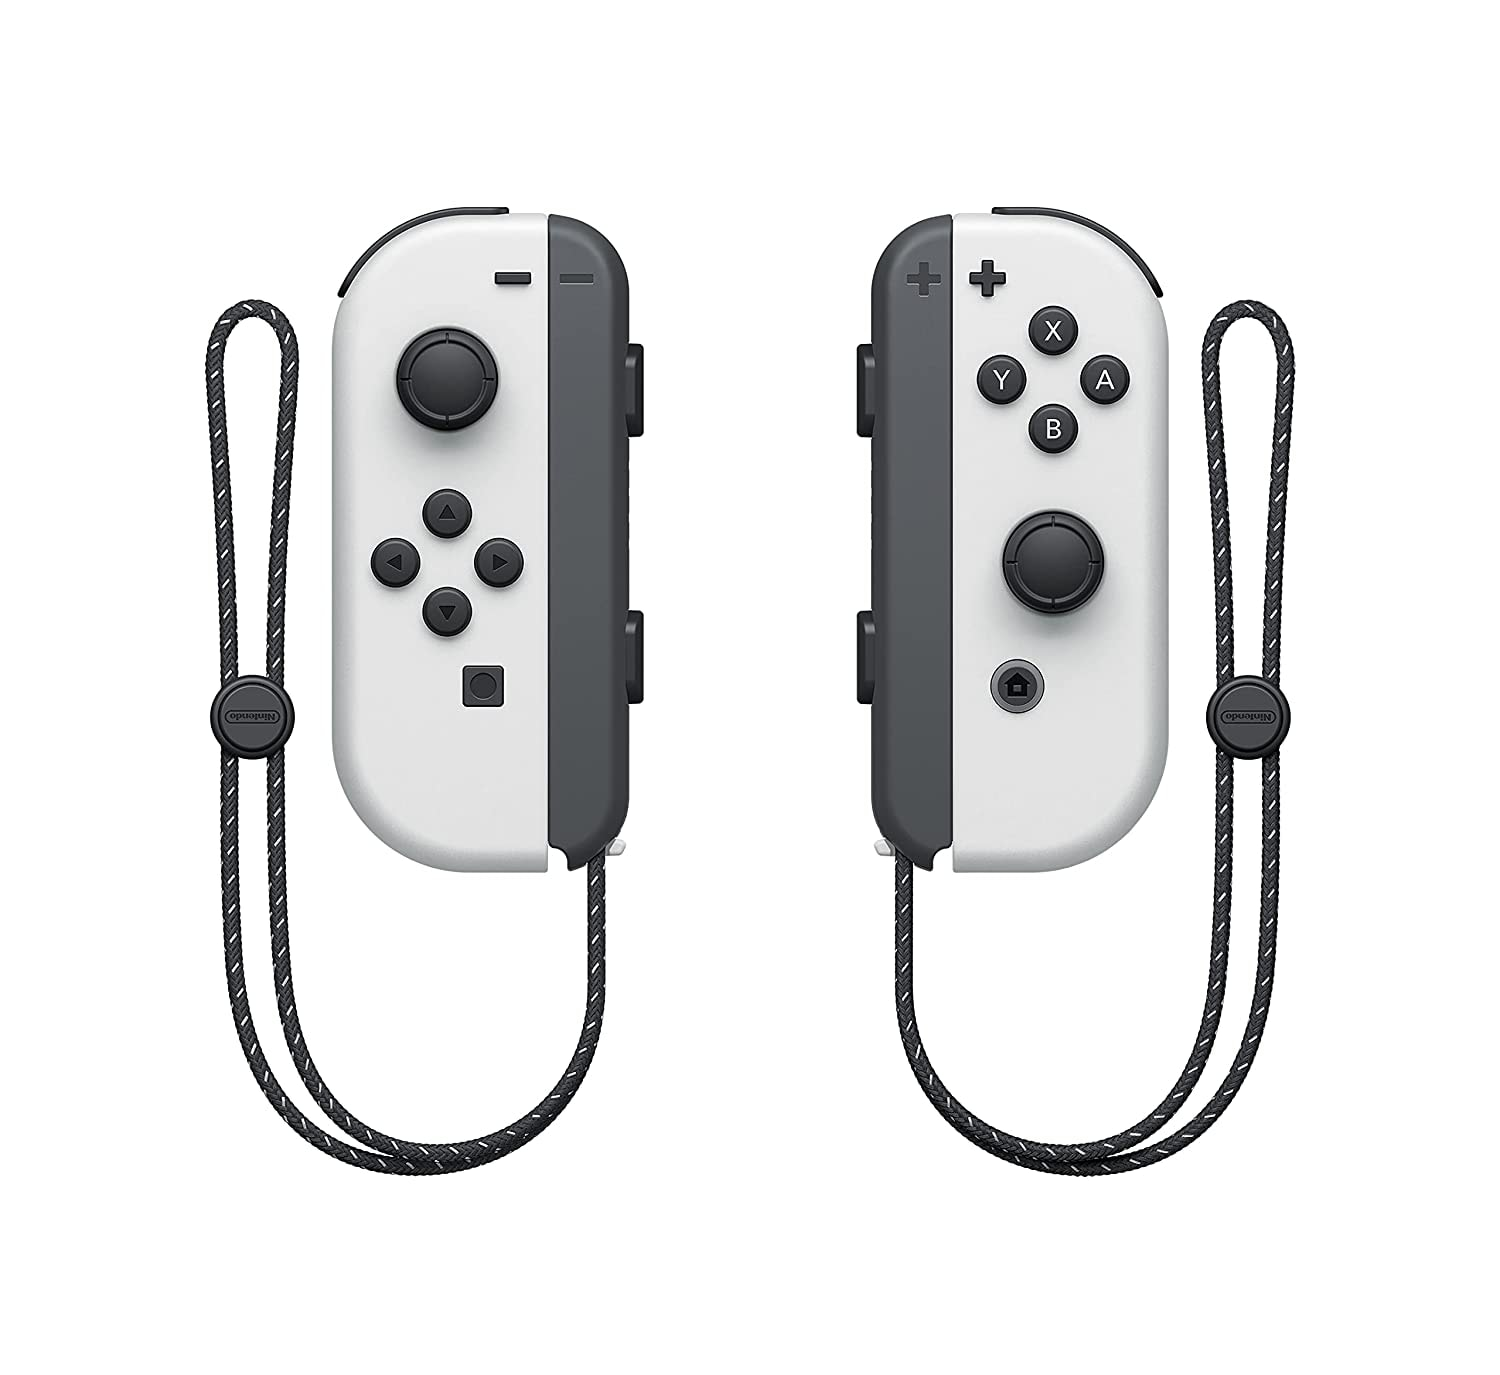 Nintendo Switch OLED Console Pre-Order - White - 4